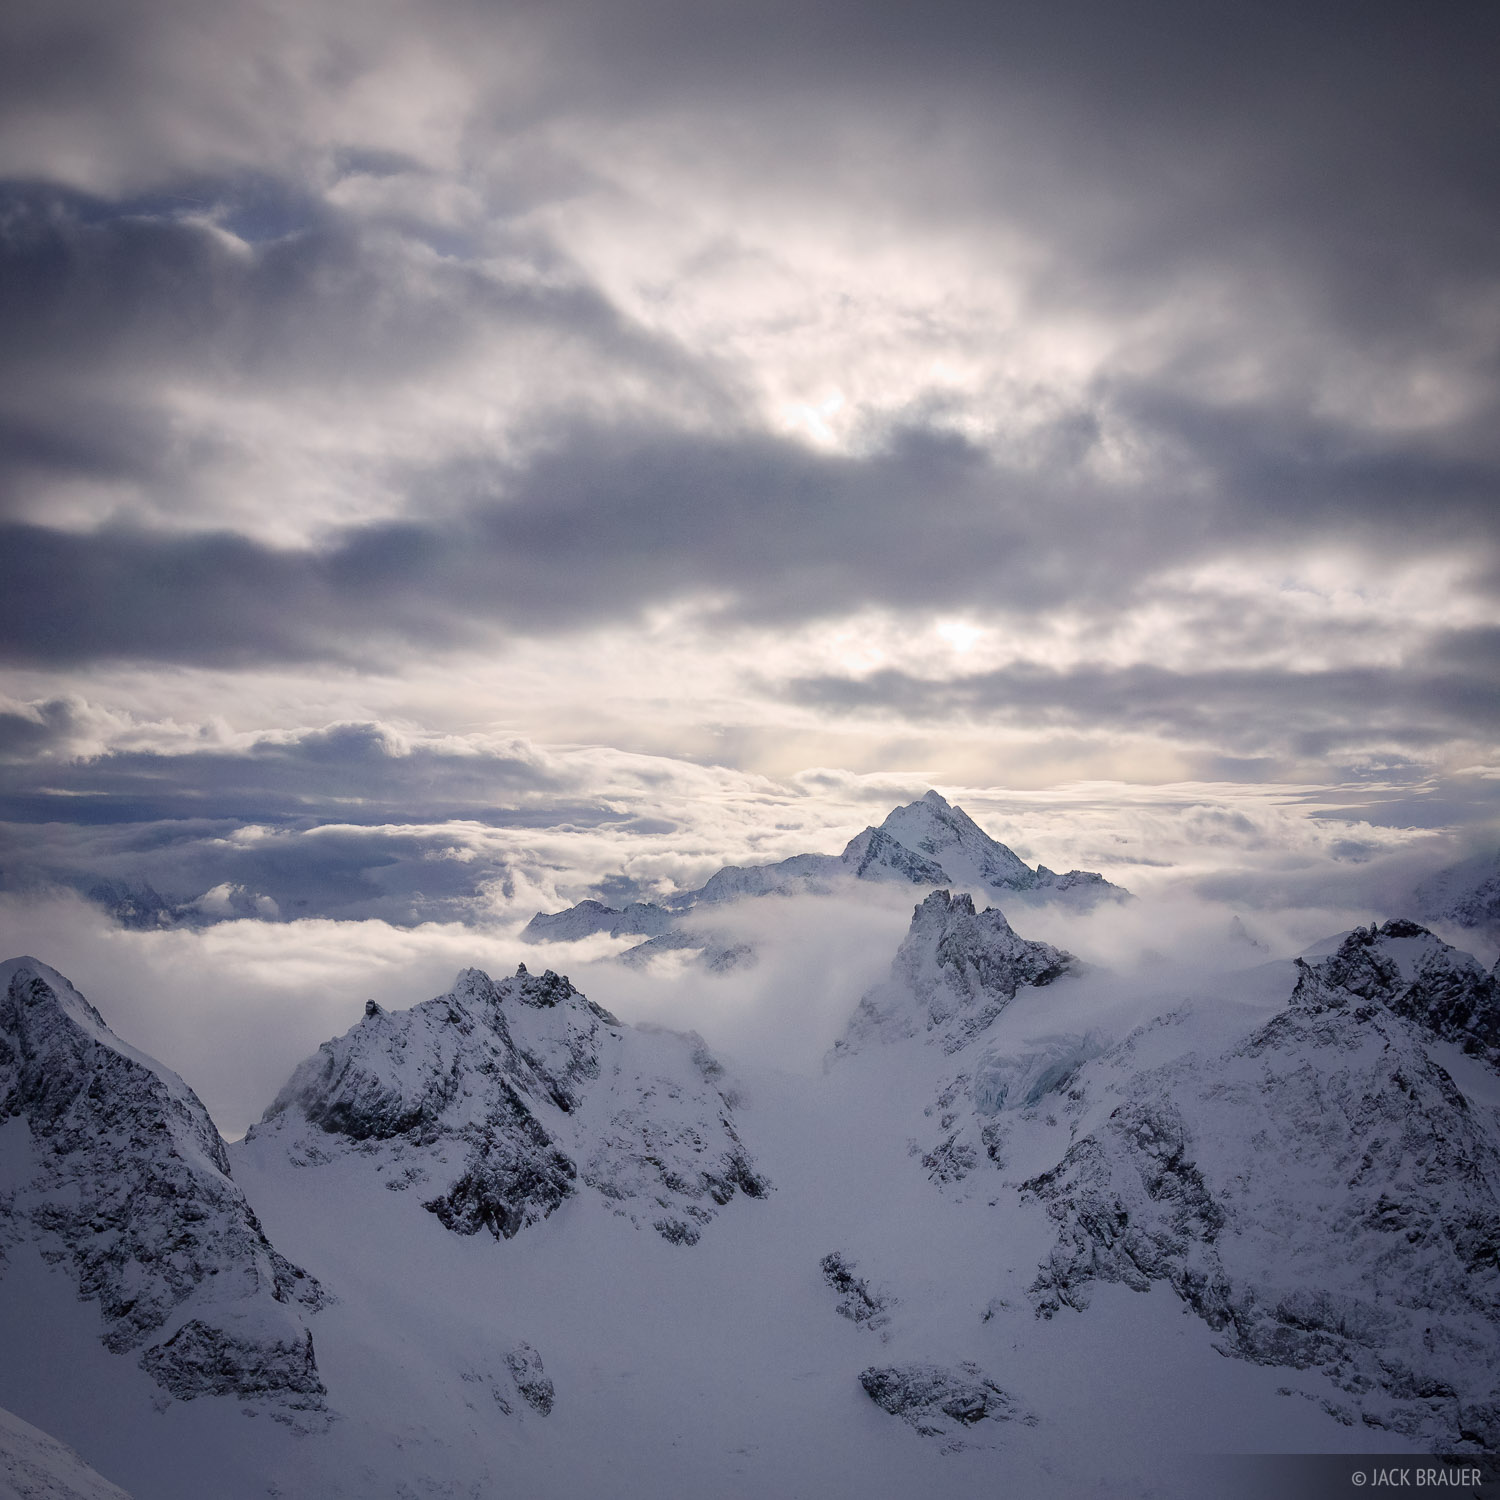 Misty clouds float amongst the peaks around Fleckistock, as seen from Klein Titlis - January.